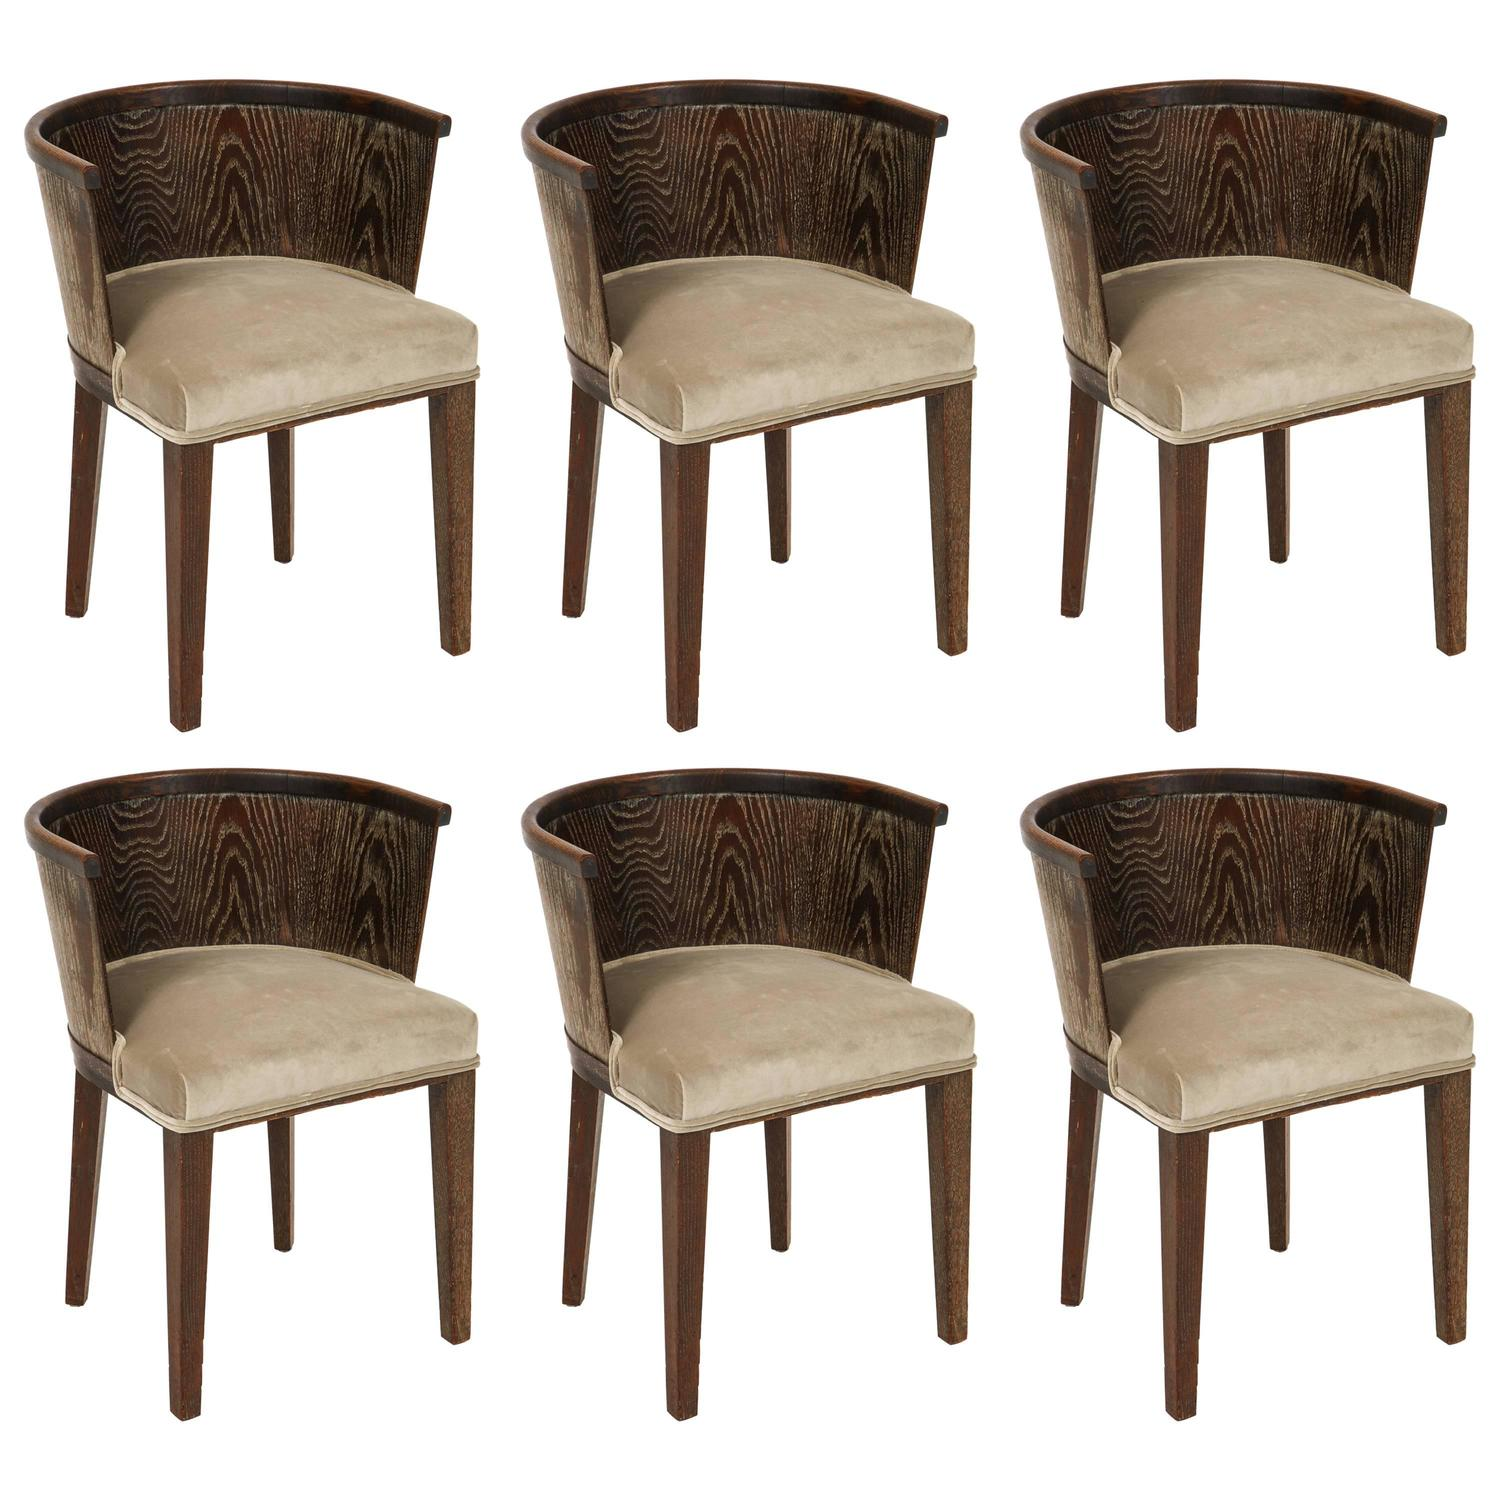 Majorelle Six Grey Cerused Oak Barrel Chairs Art Deco France 1920s 1930s